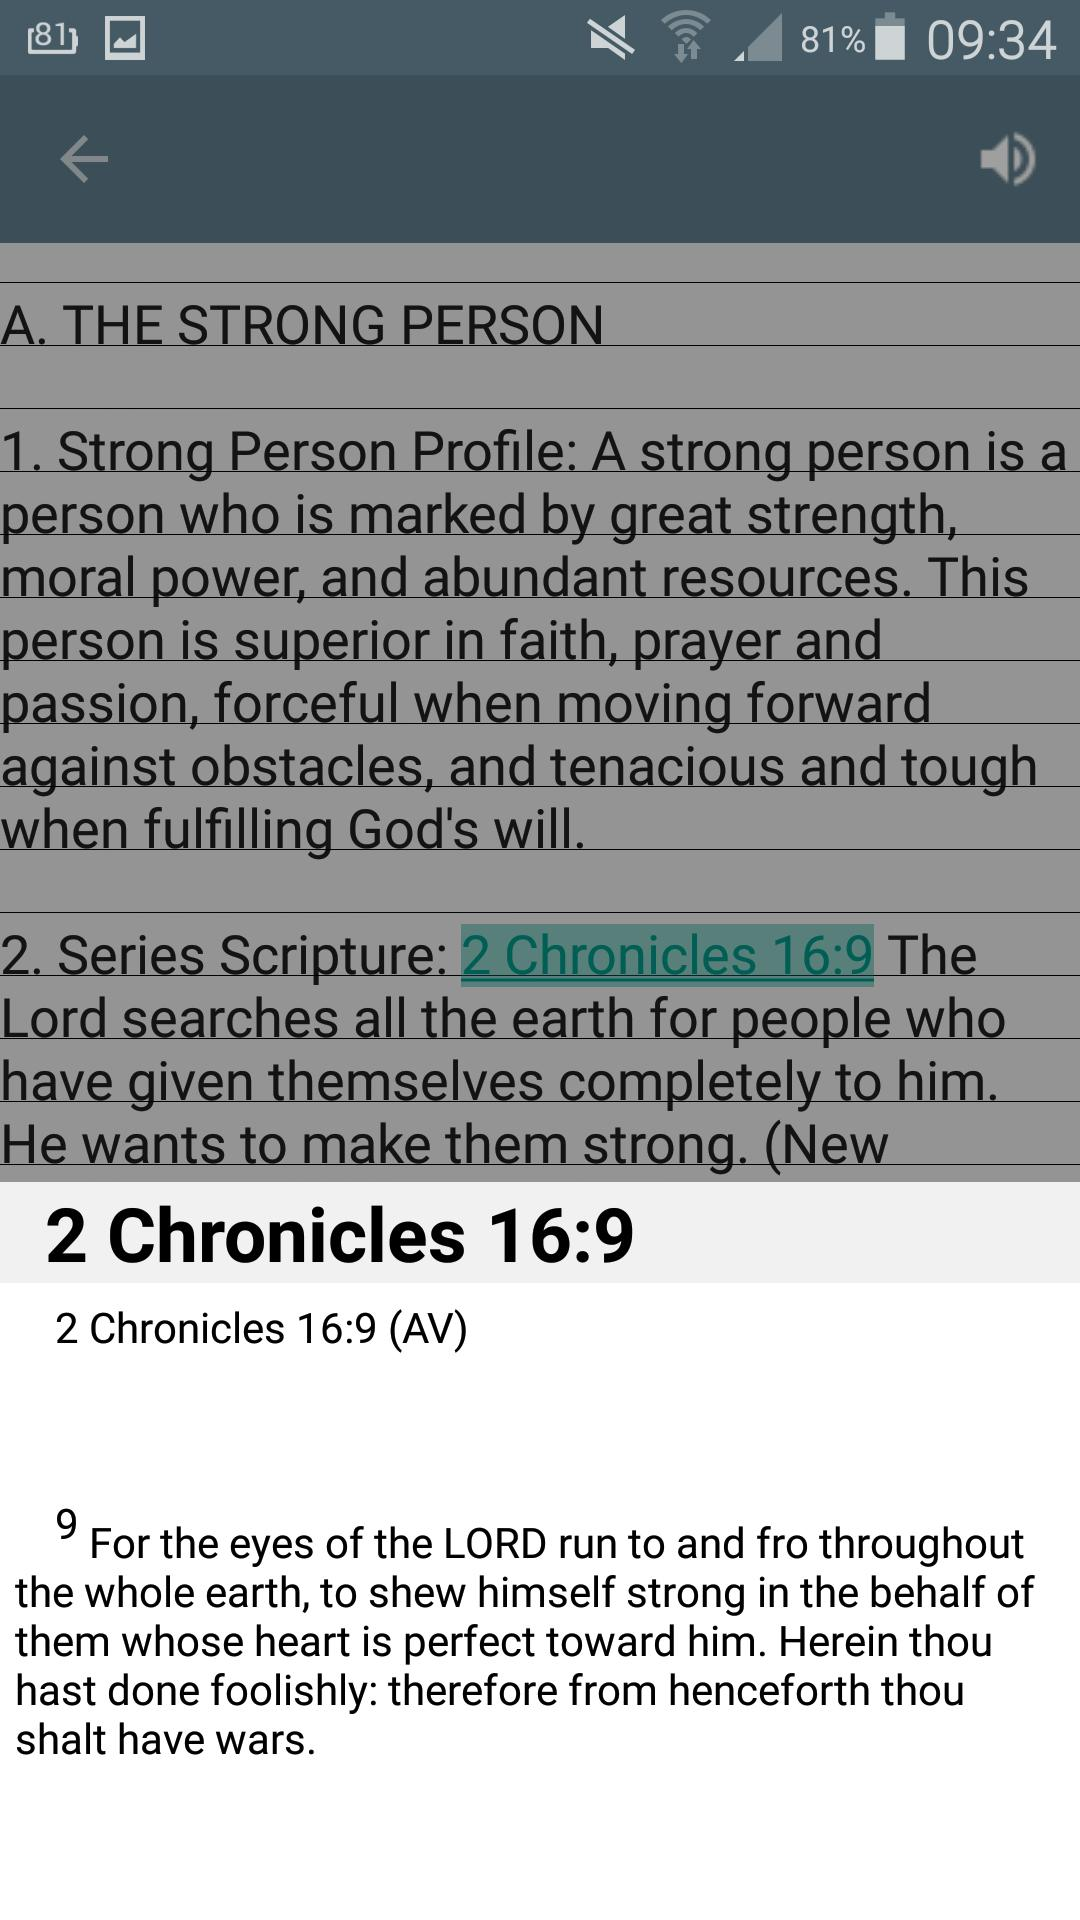 Sermon Notepad for Android - APK Download